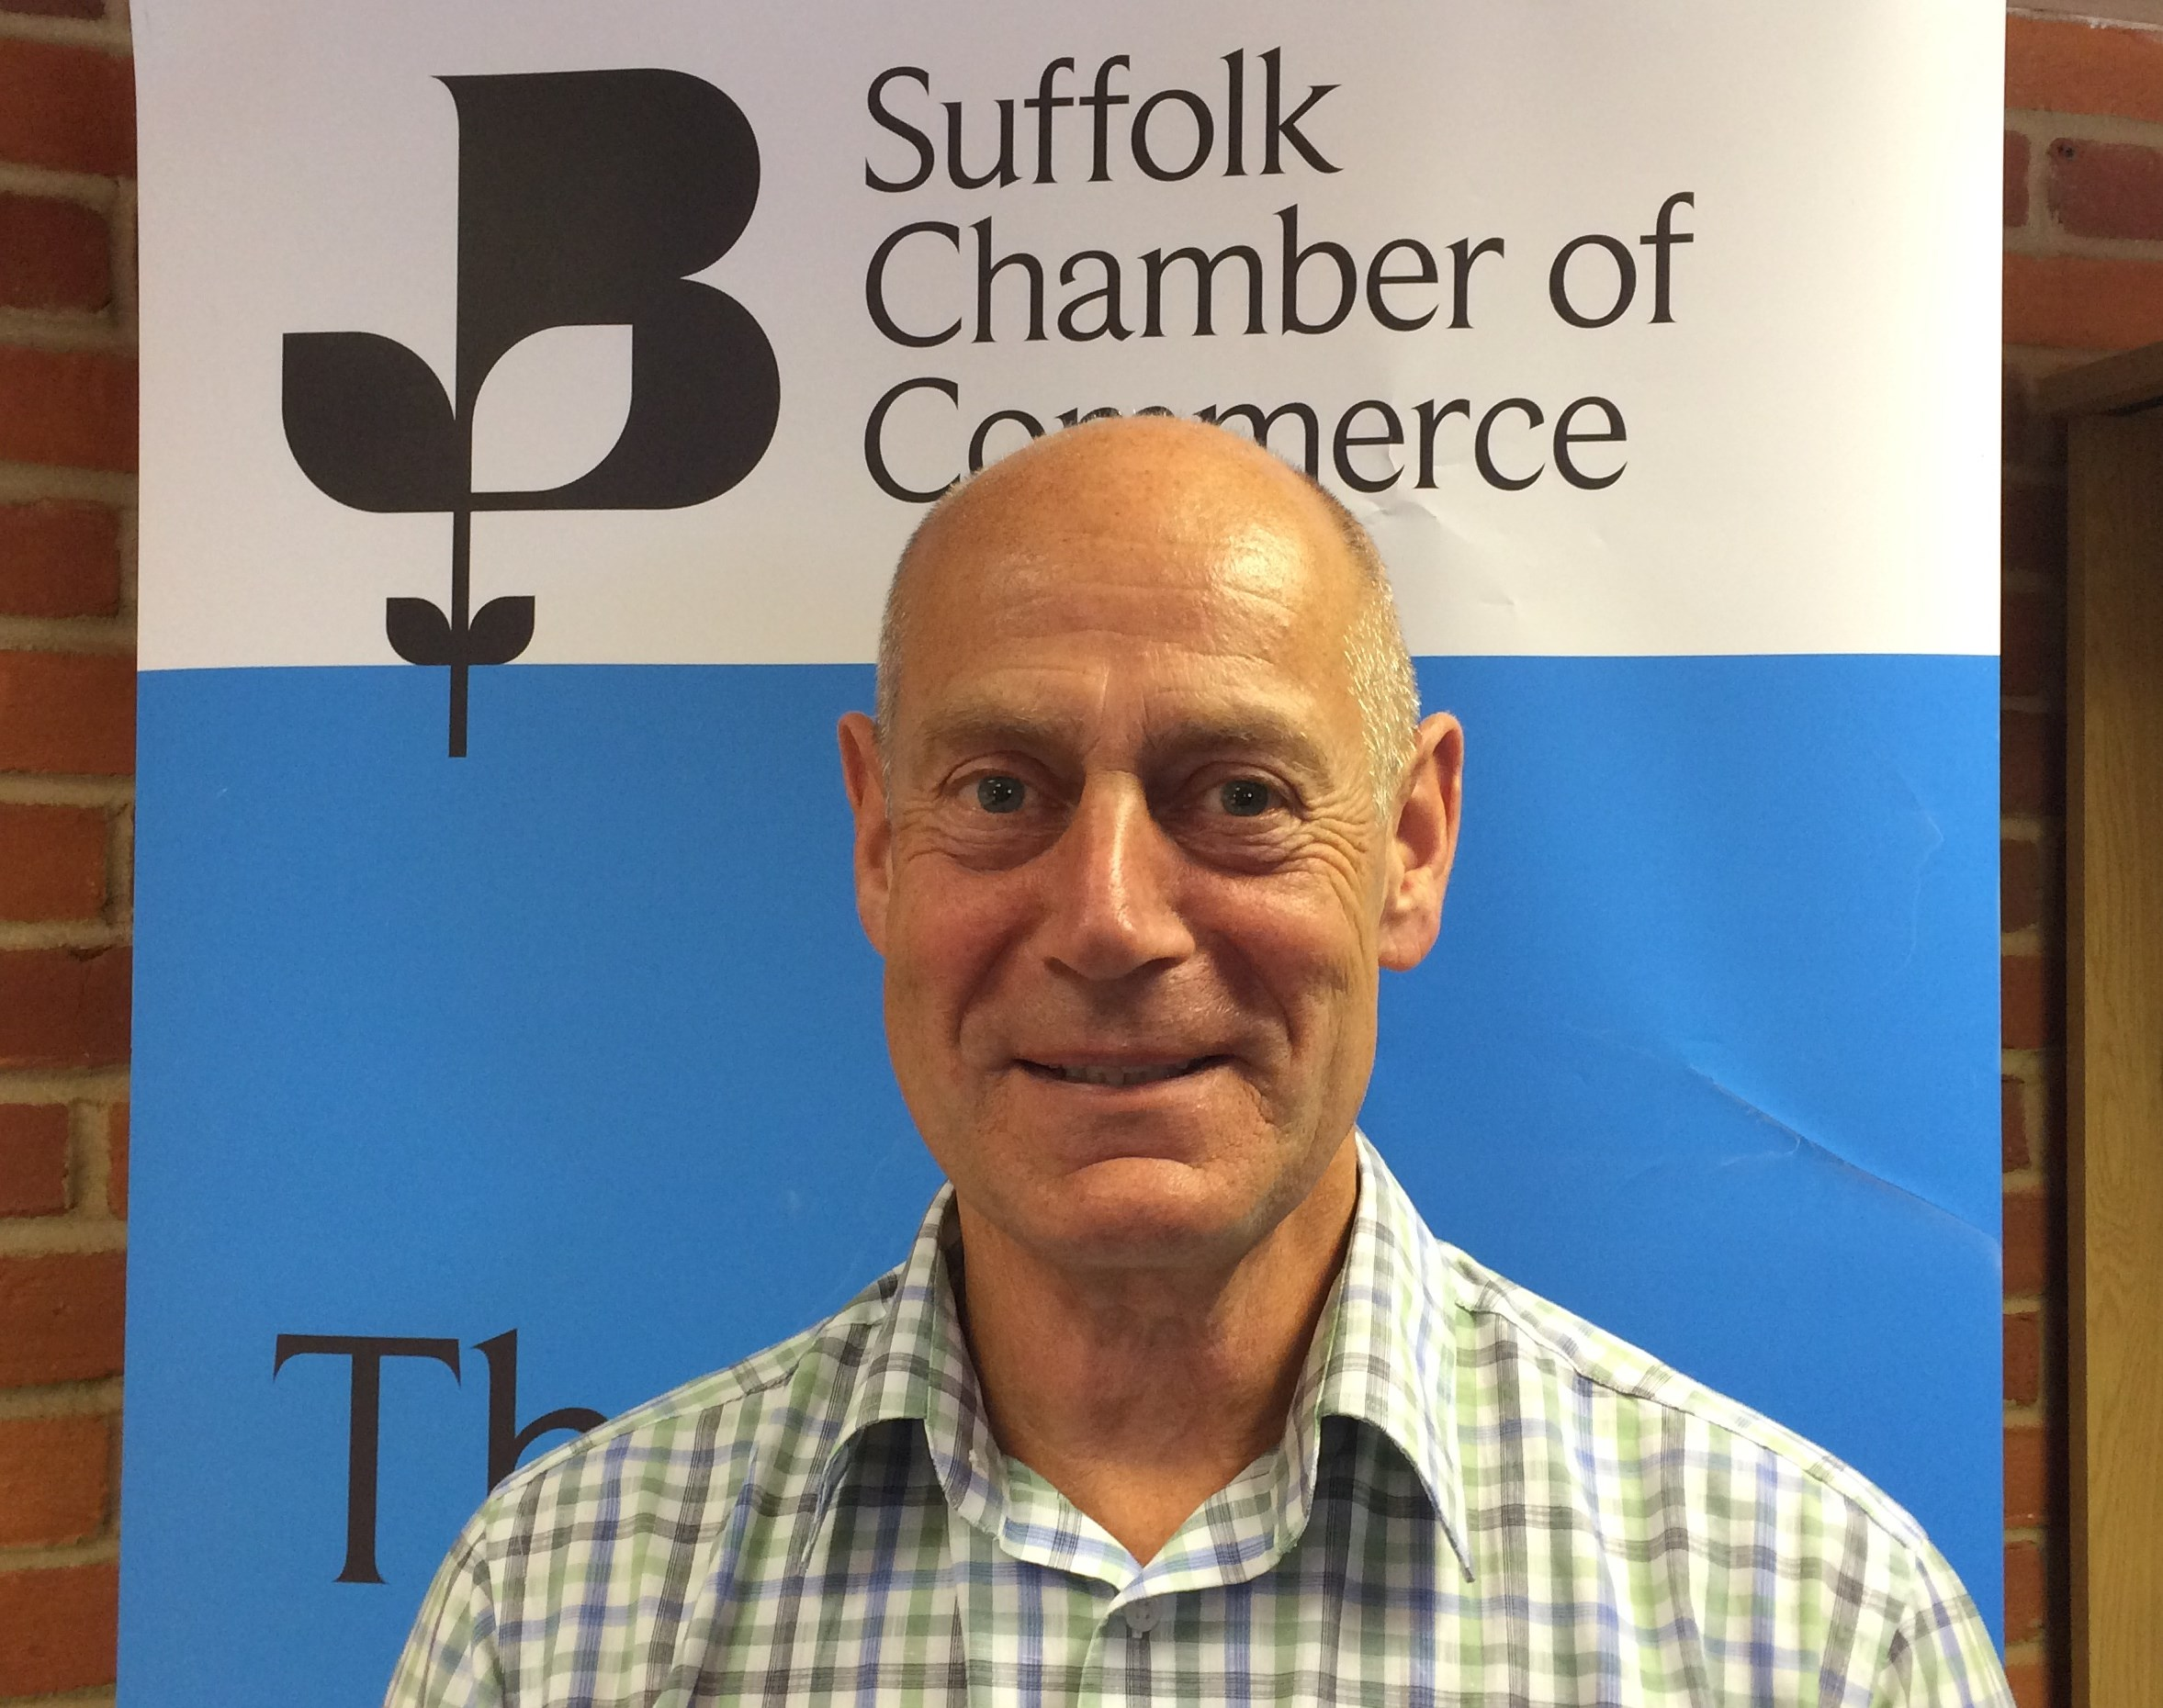 Suffolk businesses doing very well, but experiencing growing recruitment difficulties